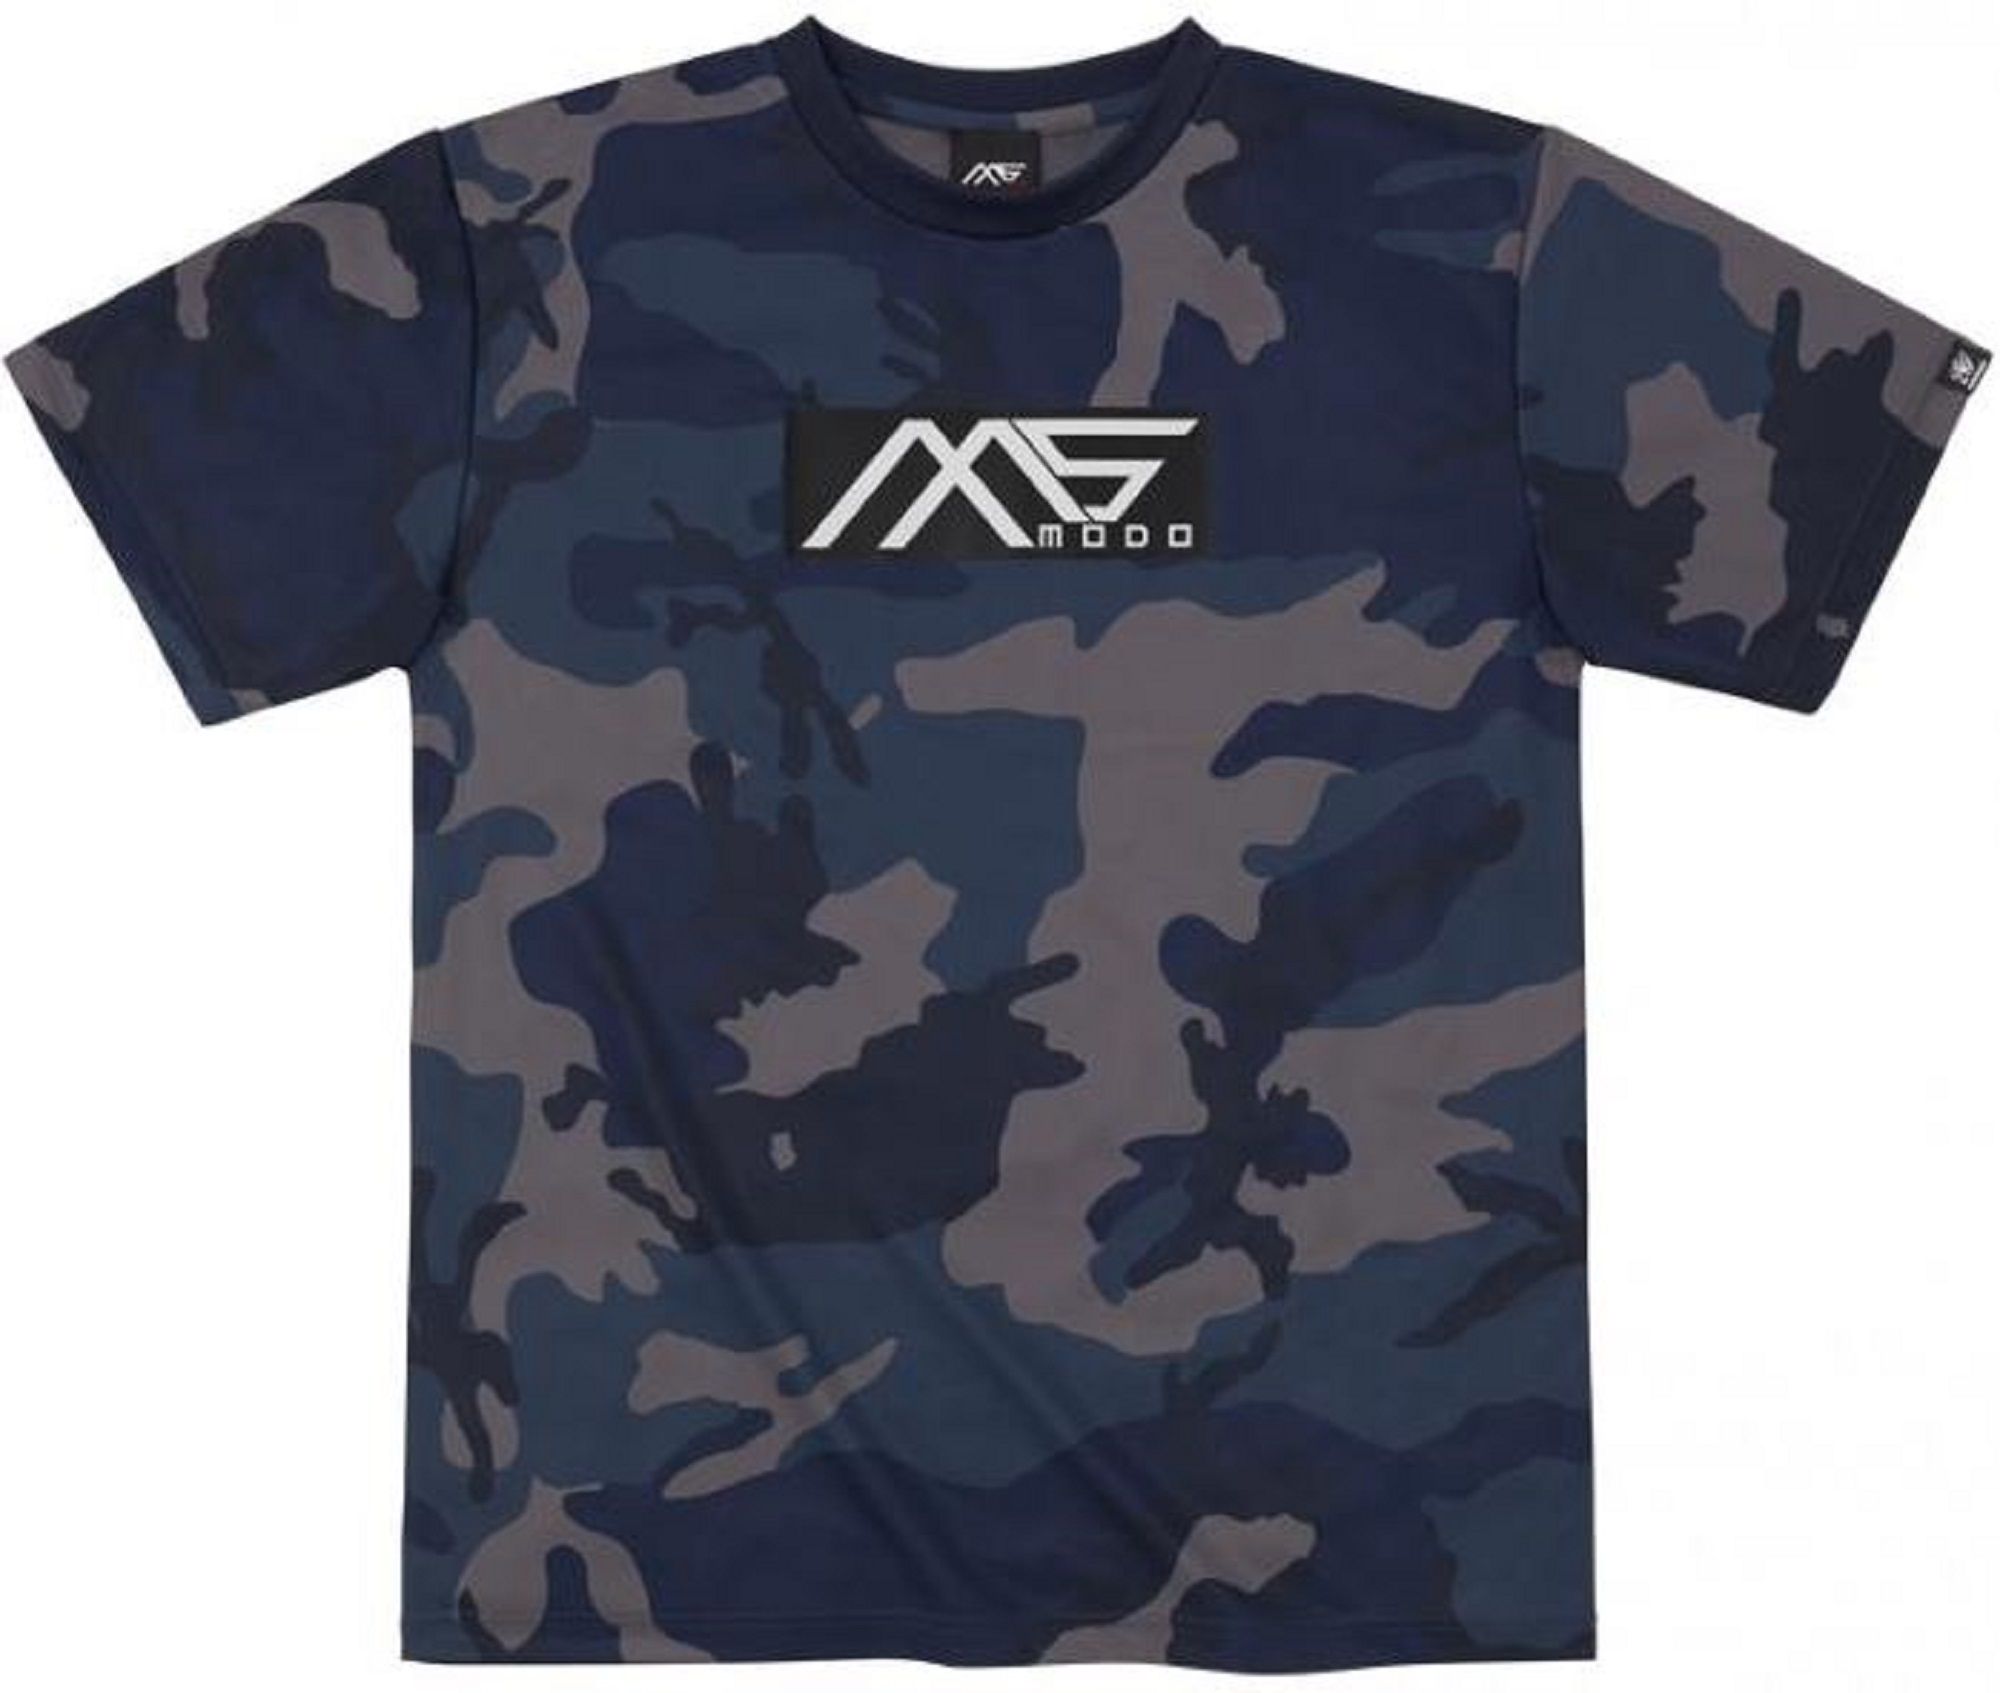 Evergreen T-Shirt Dry Fit Short Sleeve MS-modo Size M Navy Camou (6320)